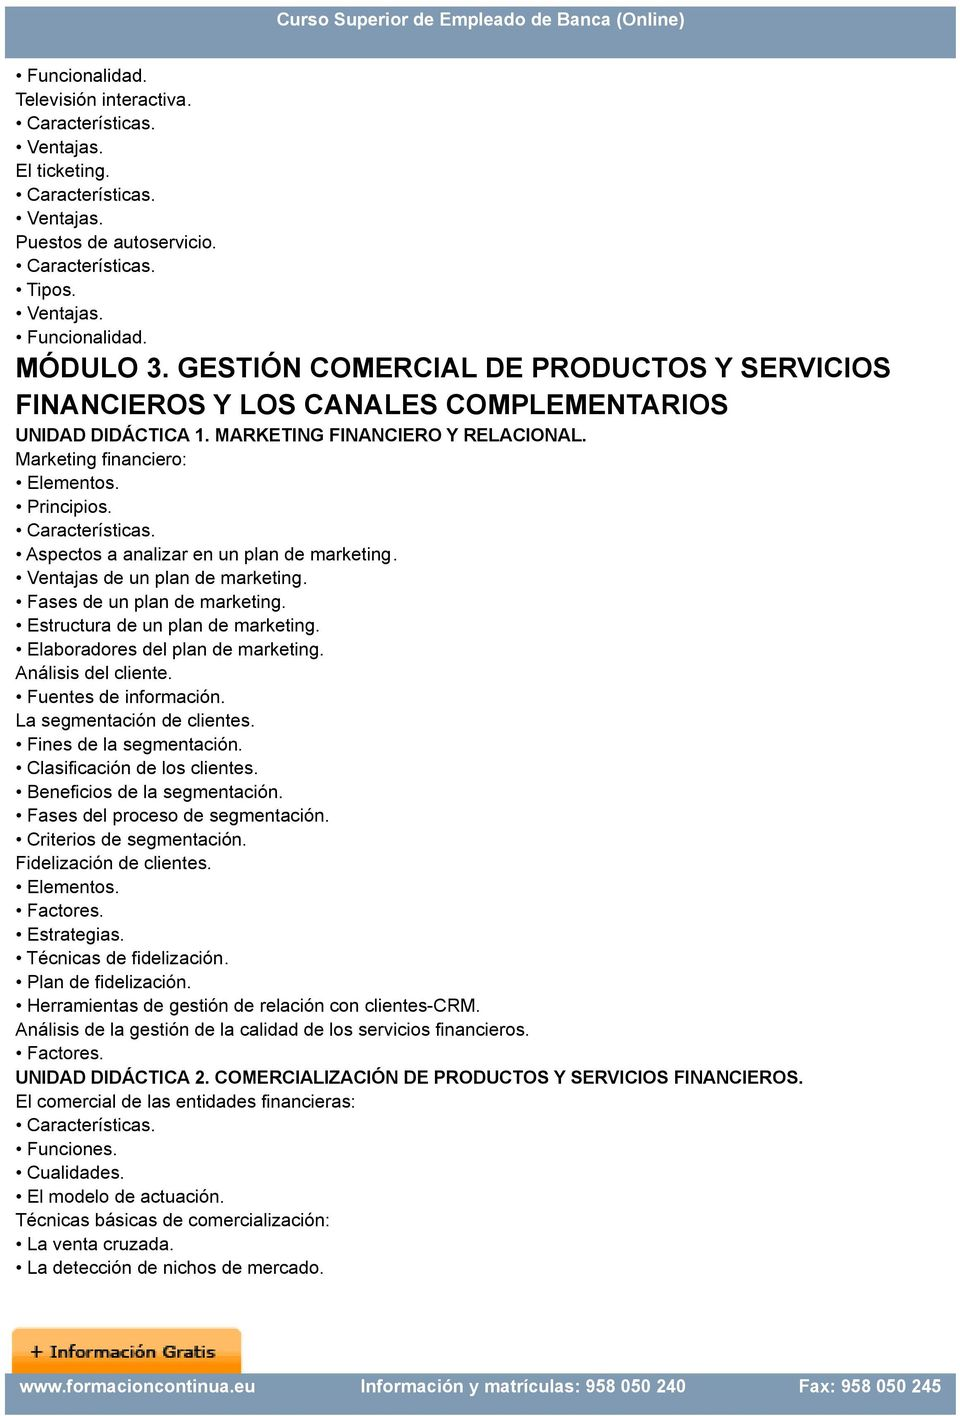 Aspectos a analizar en un plan de marketing. Ventajas de un plan de marketing. Fases de un plan de marketing. Estructura de un plan de marketing. Elaboradores del plan de marketing.